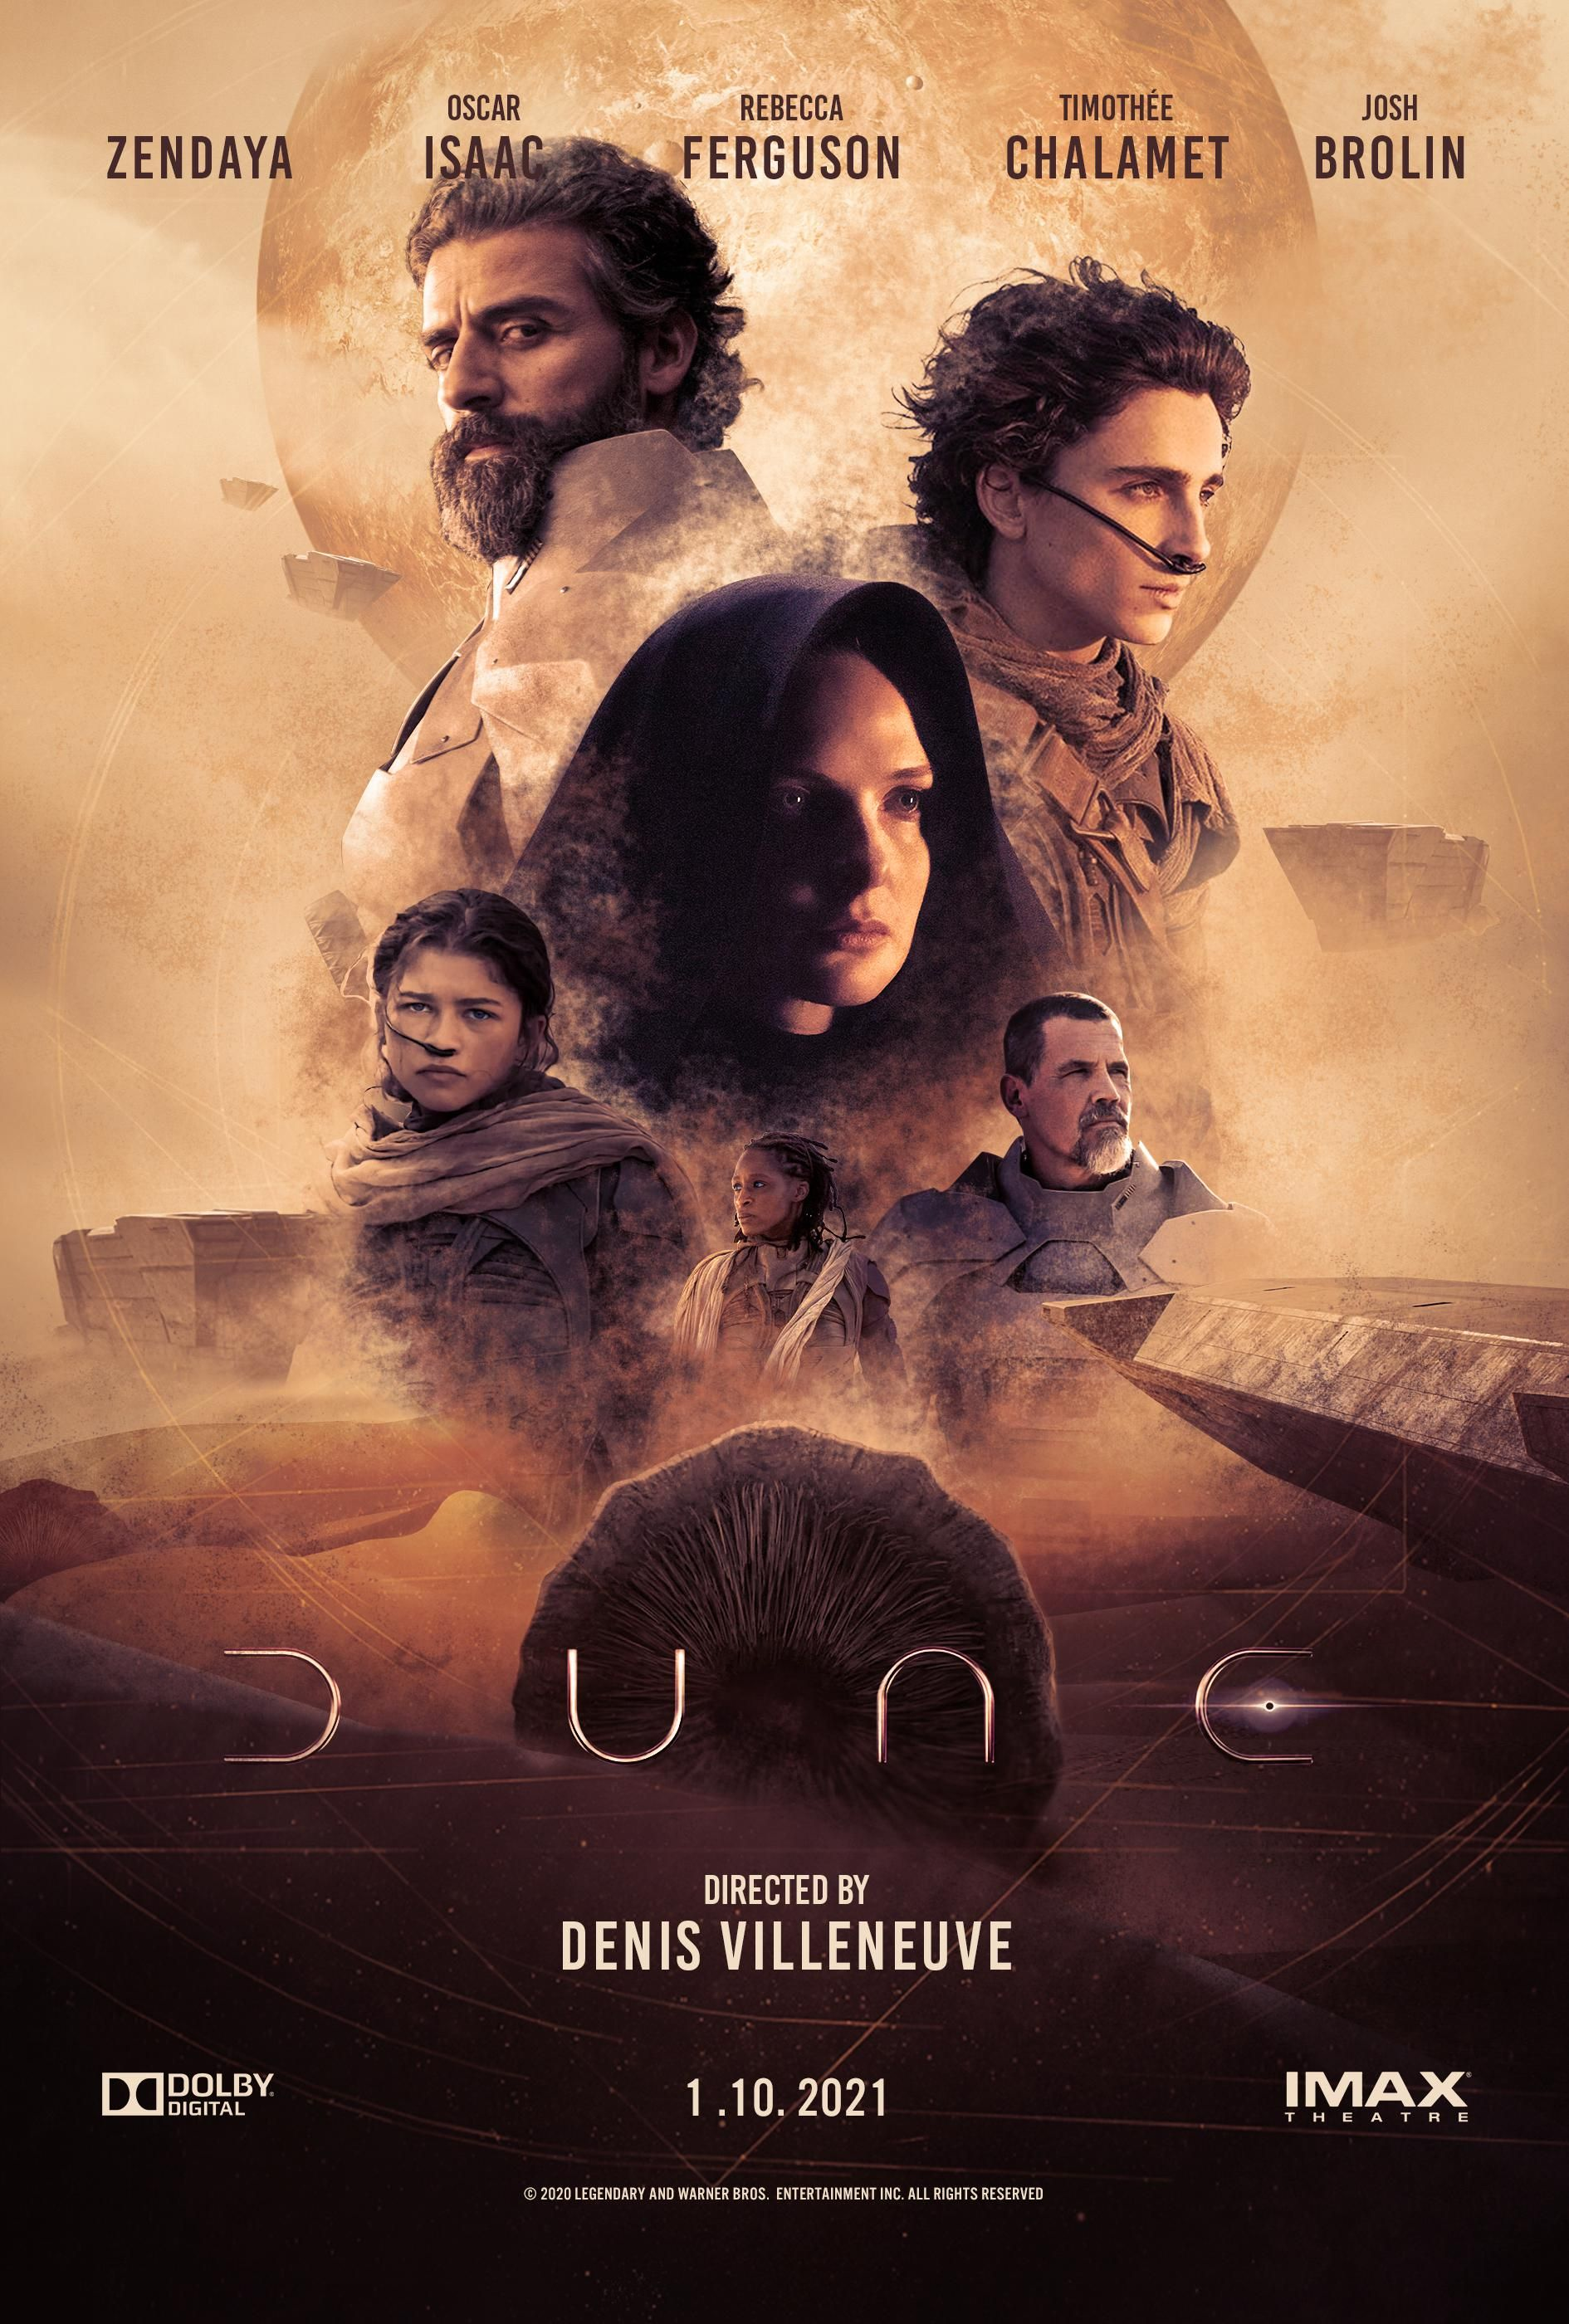 Dune 2021 Movie Poster Movie Posters Science Fiction Movie Posters Best Movie Posters